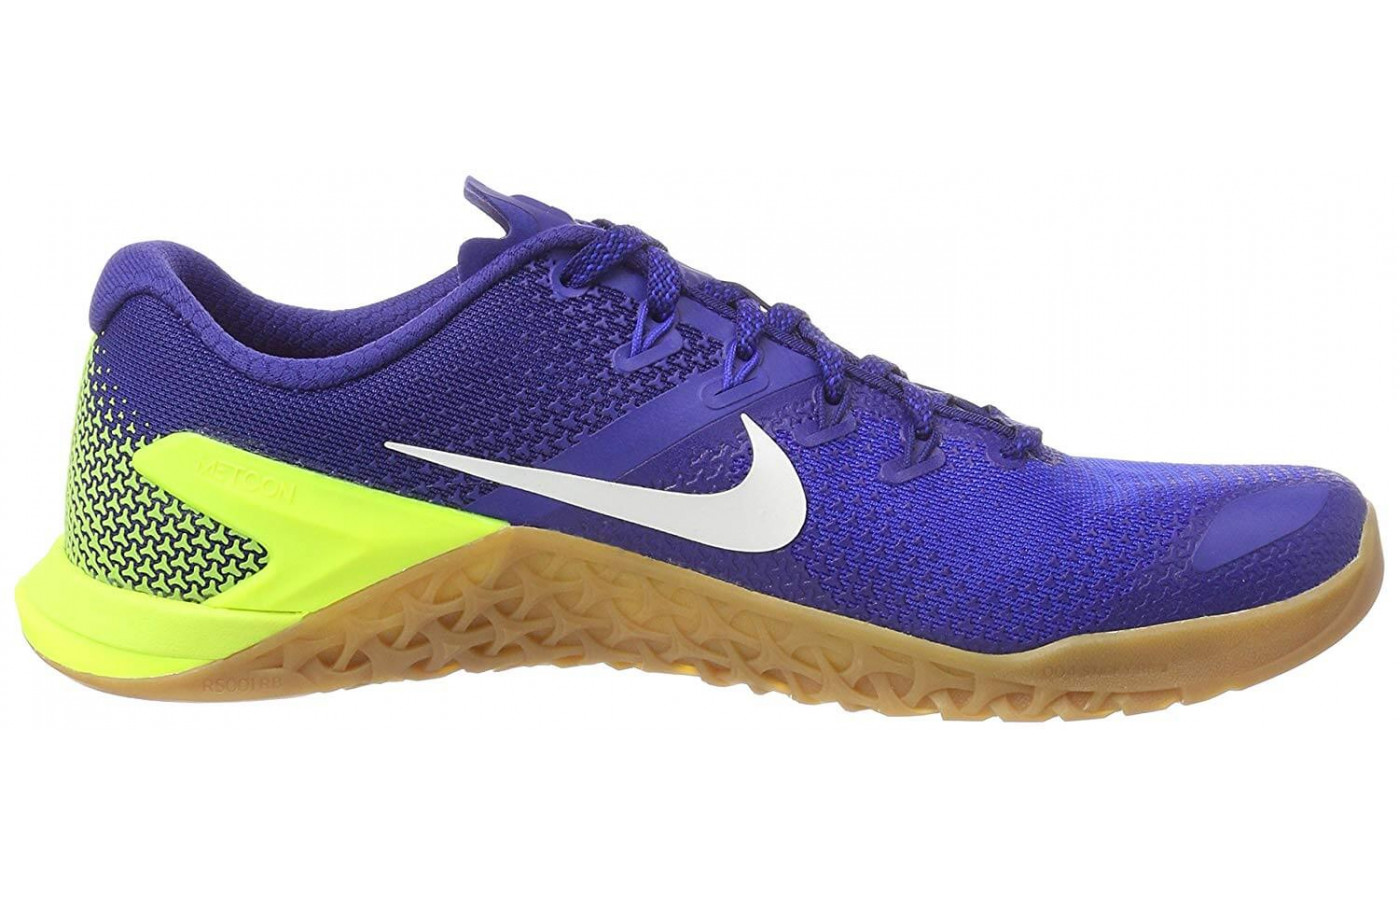 130929df25e Nike Metcon 4 Reviewed - To Buy or Not in Mar 2019